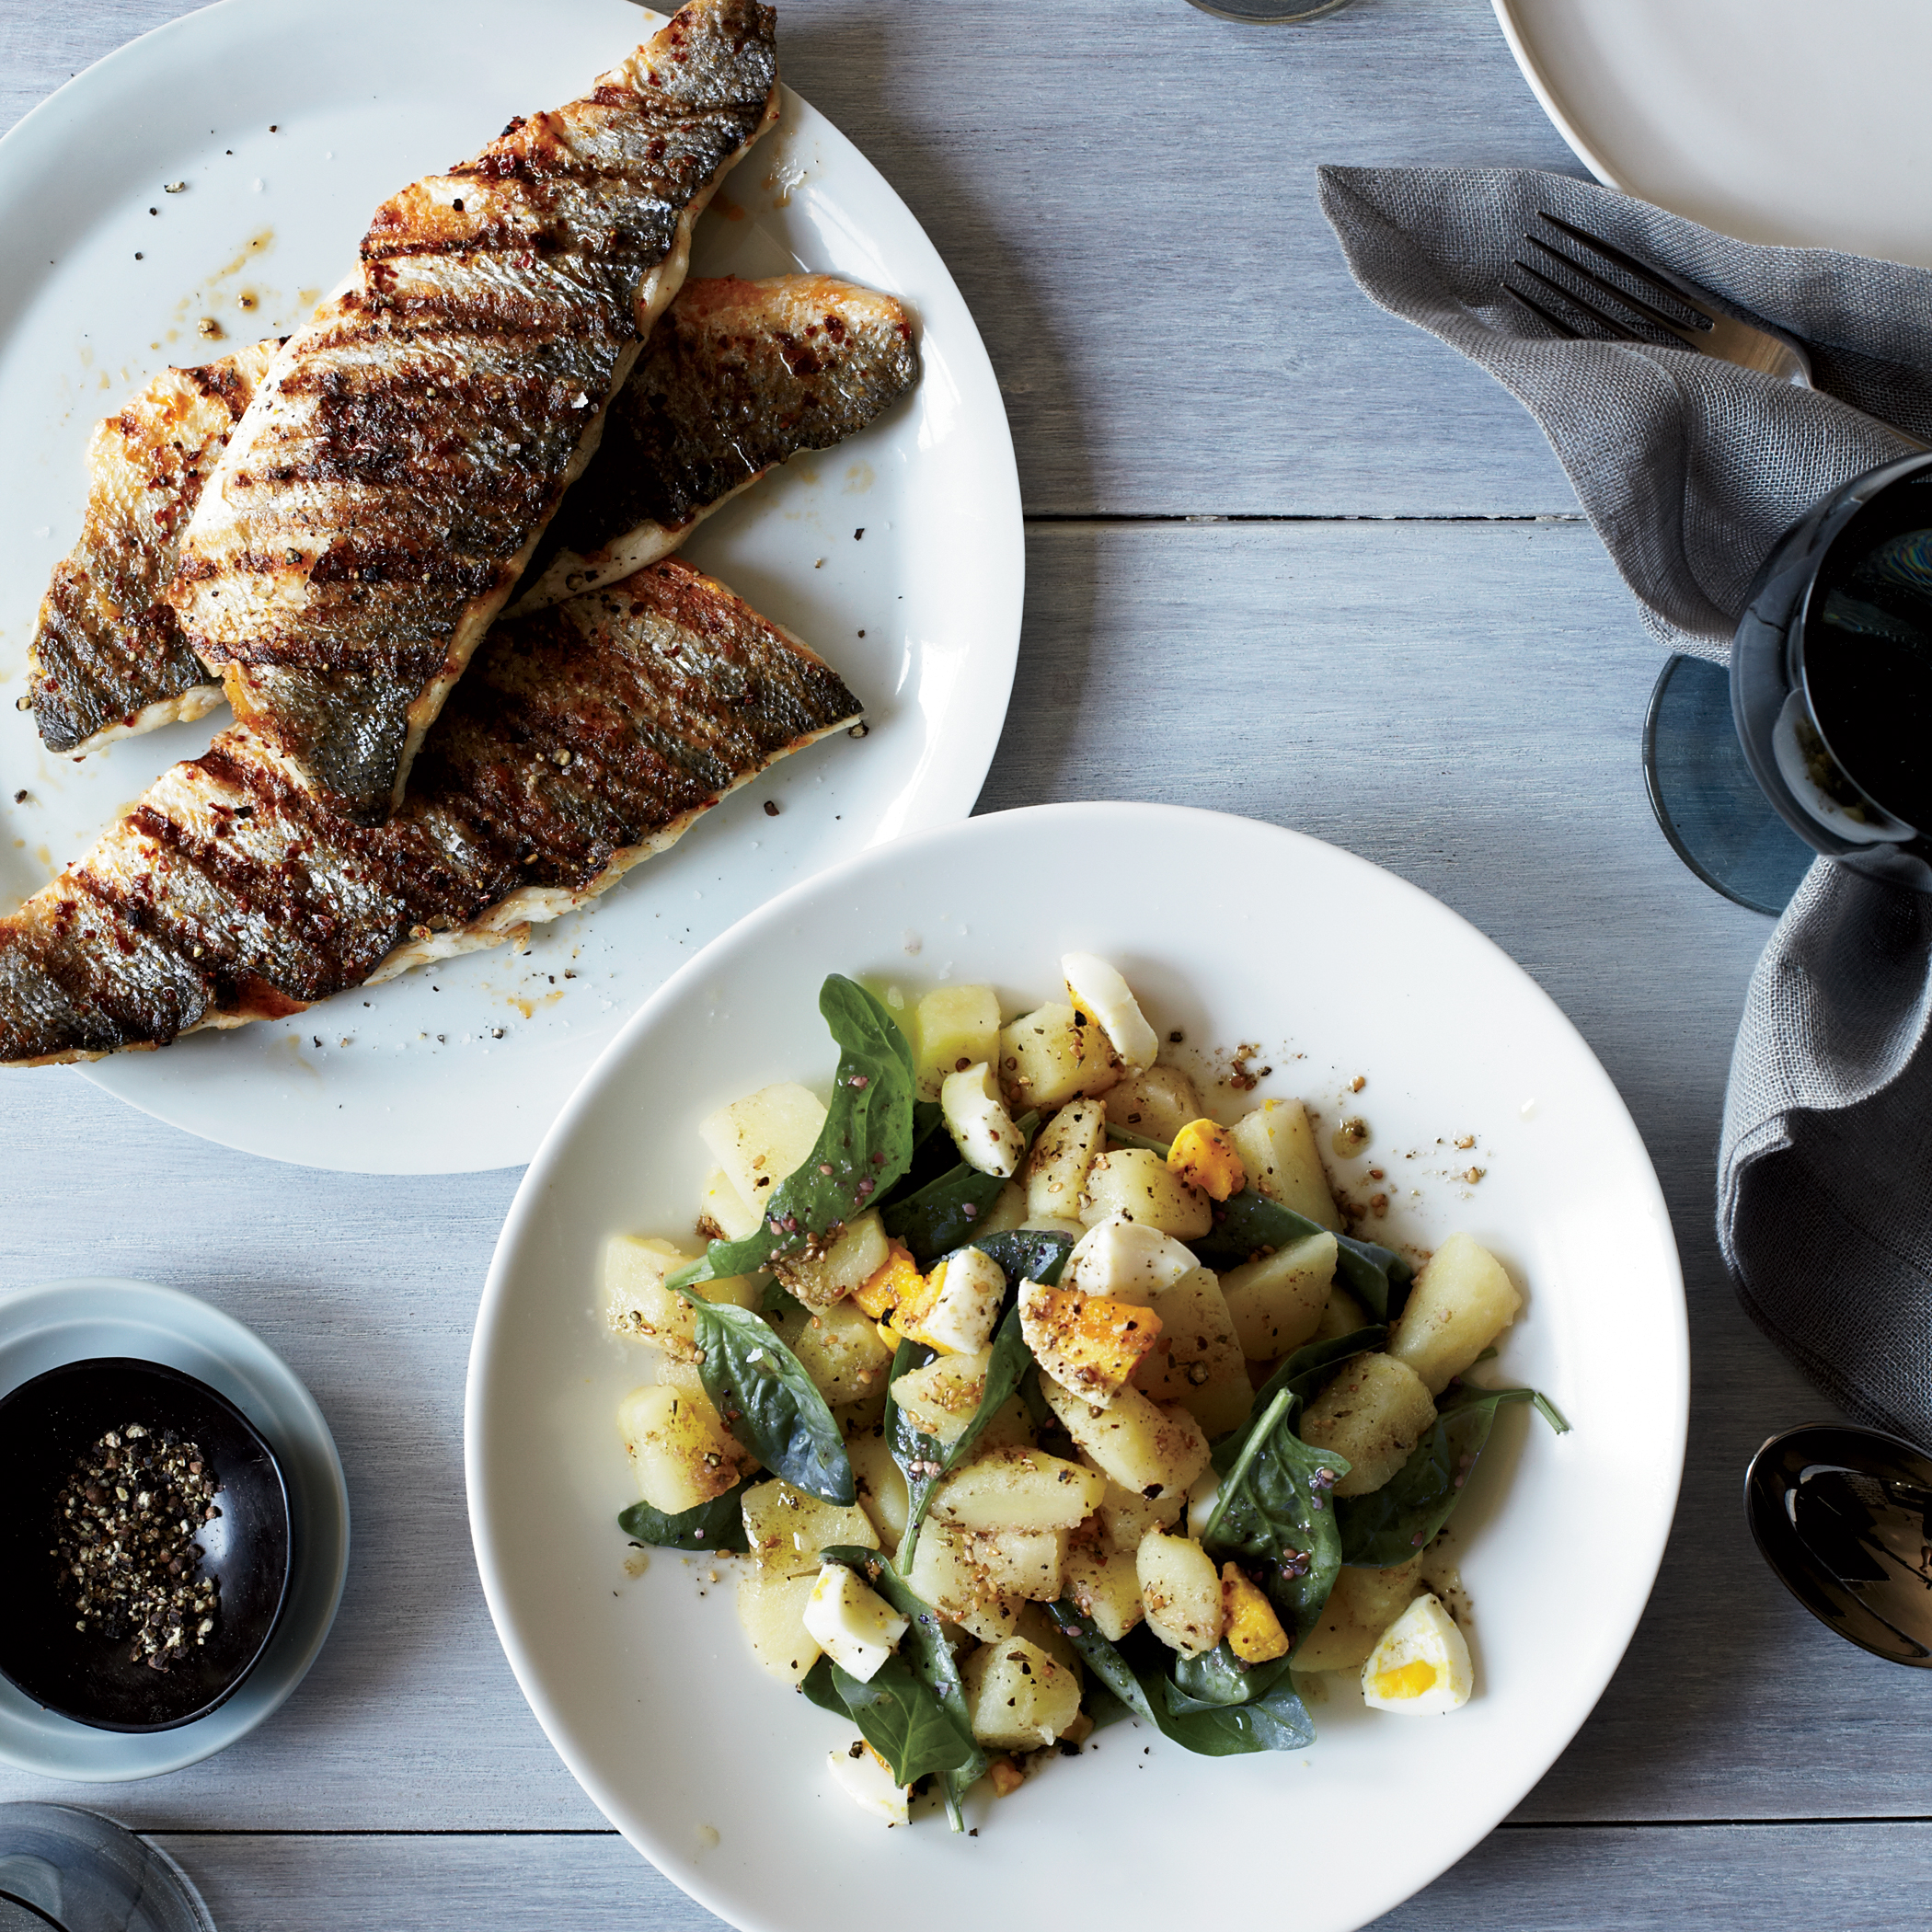 Grilled Branzino Fillets With Potato Amp Spinach Salad